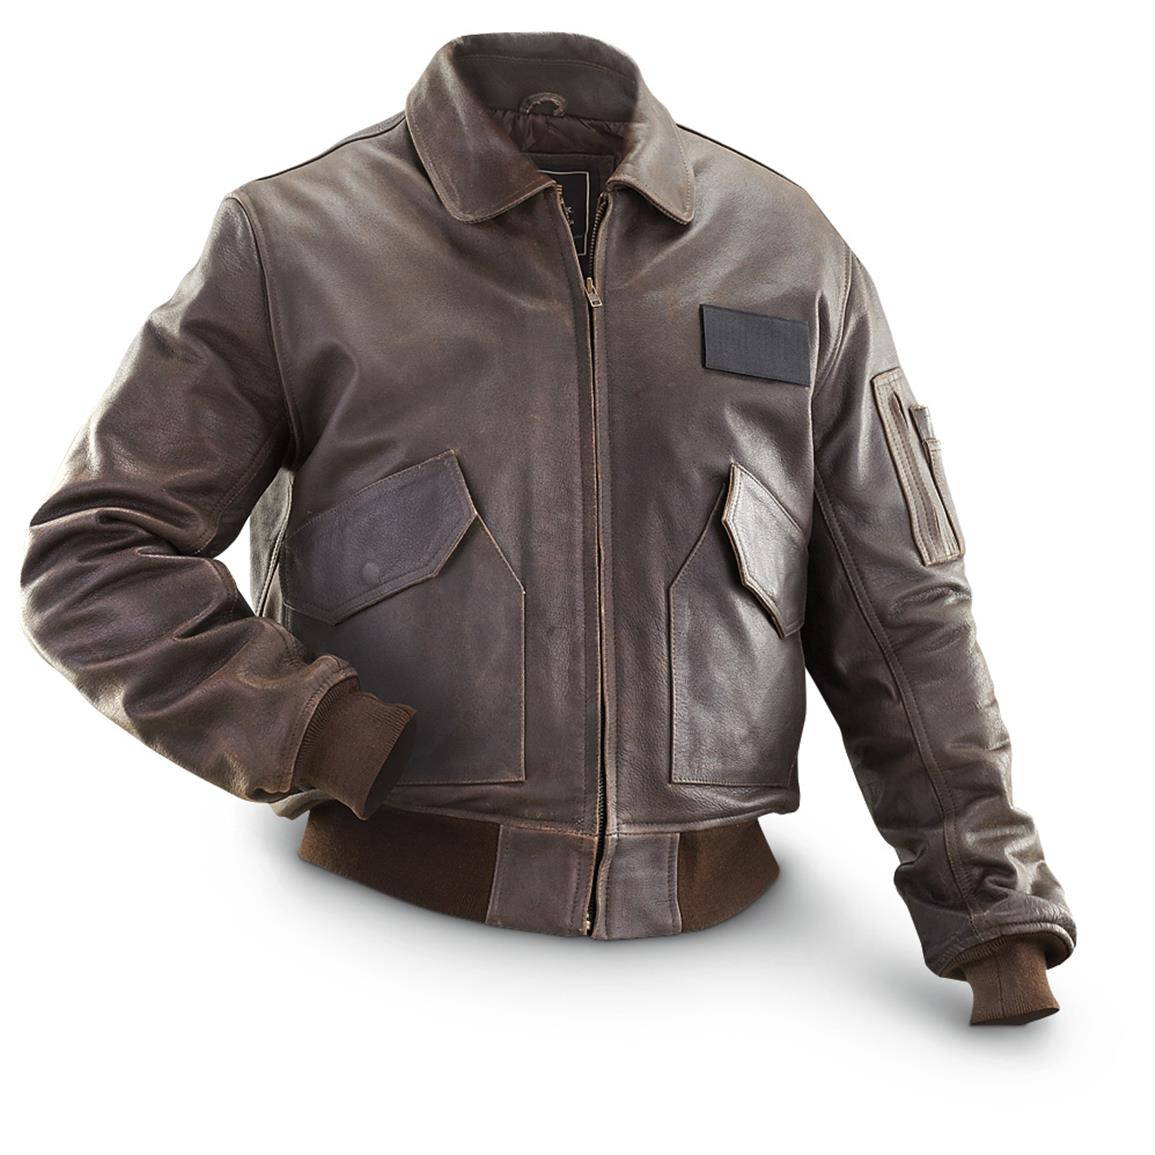 Alpha Industries Leather CWU 45 / P Flight Jacket, Distressed Brown